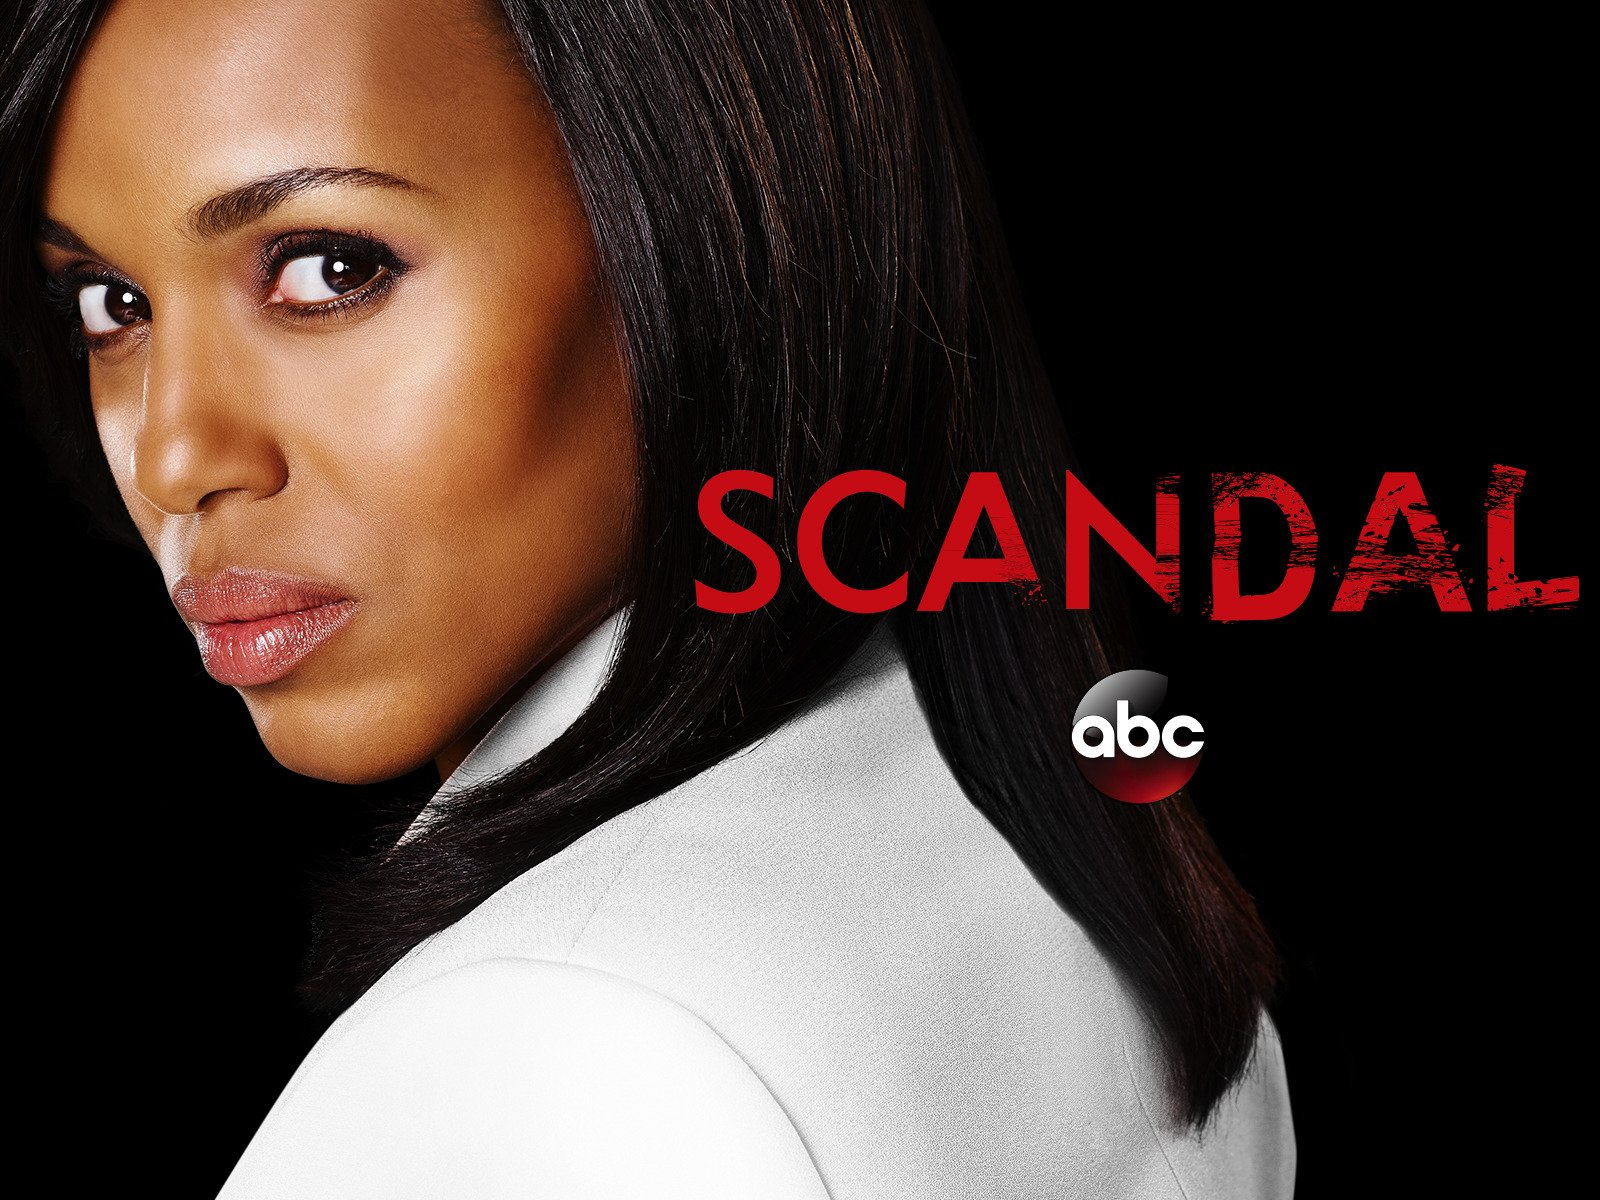 Scandal Season 6 - Season 6